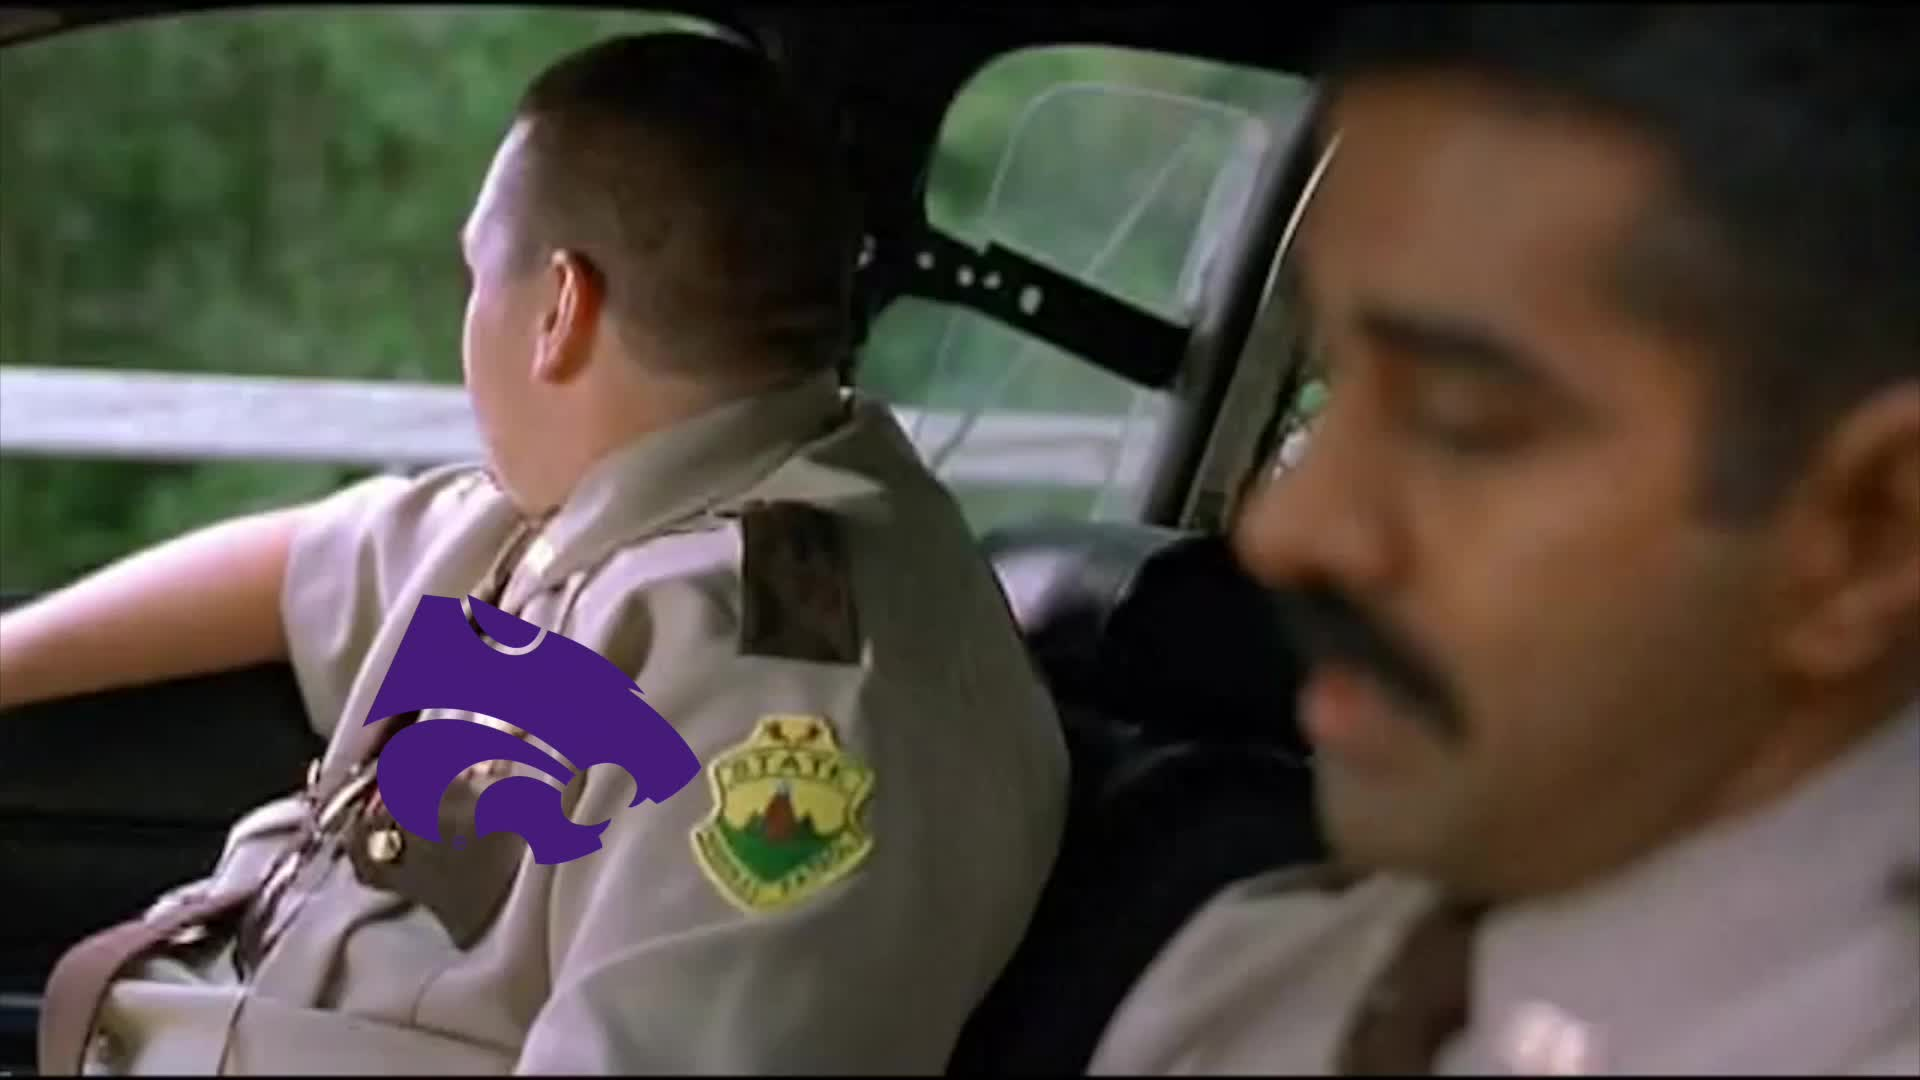 K-State, Kansas State, Super Troopers, collegebasketball, Play Sandstorm GIFs